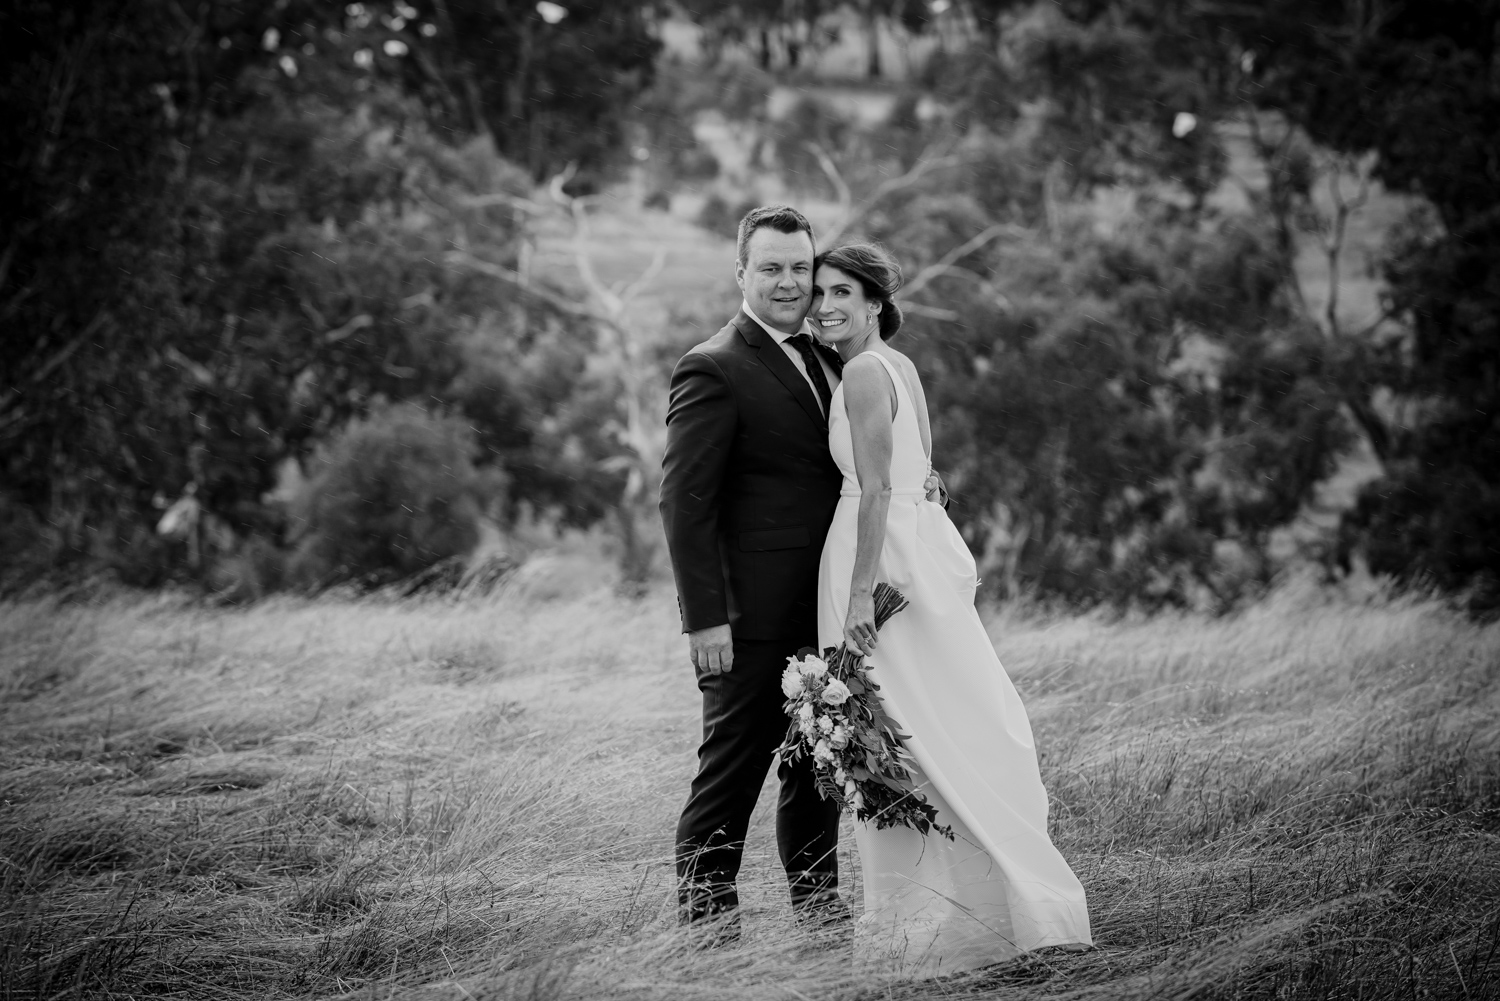 Tara & Michael - Sutton Grange Winery